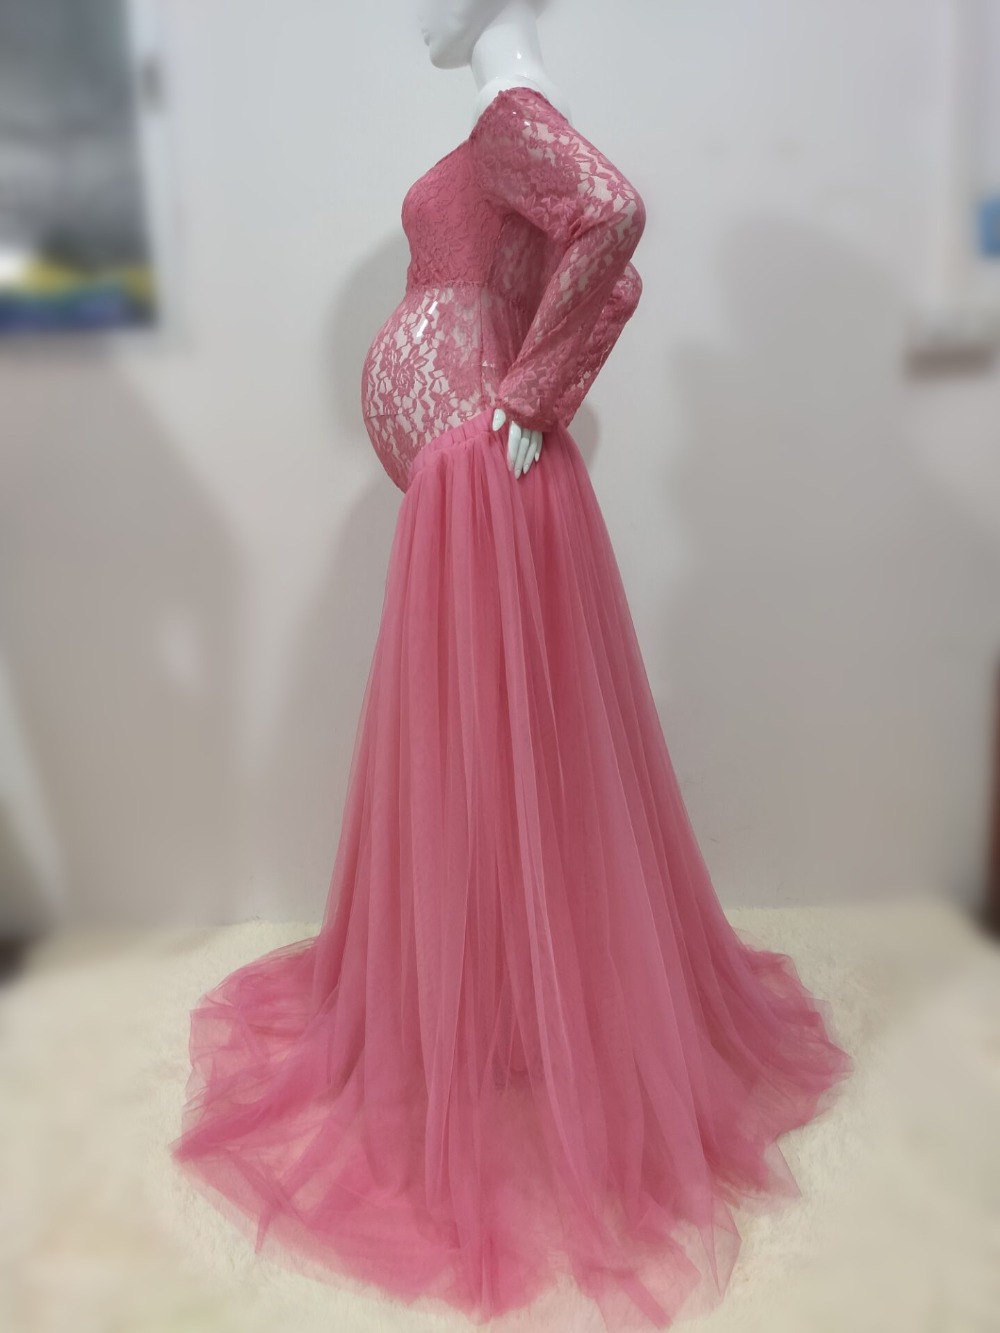 Sexy Lace Maternity Photography Props Long Dress Baby Shower Fancy Pregnancy Dress Photo Shoot For Pregnant Women Mesh Maxi Gown (8)